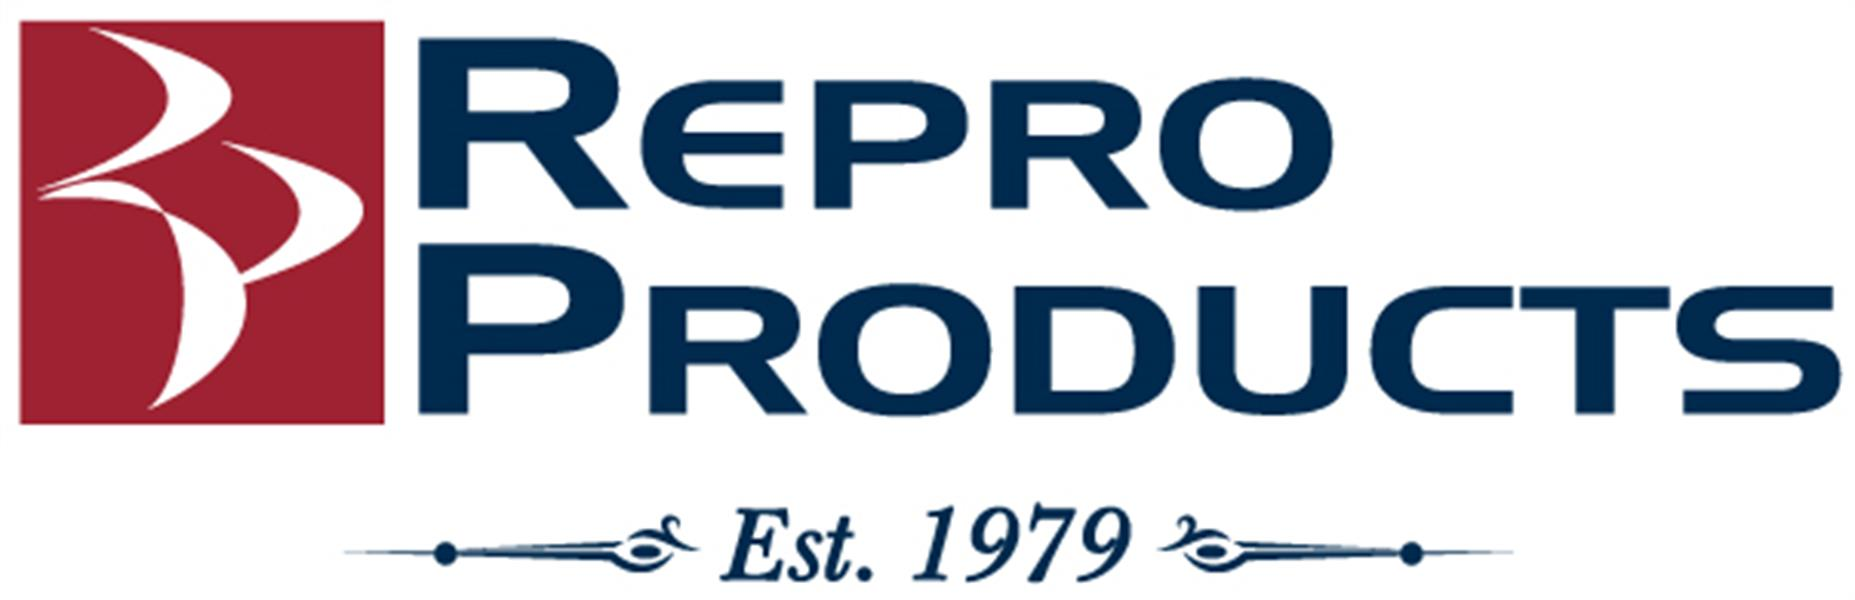 Repro Products, Inc.